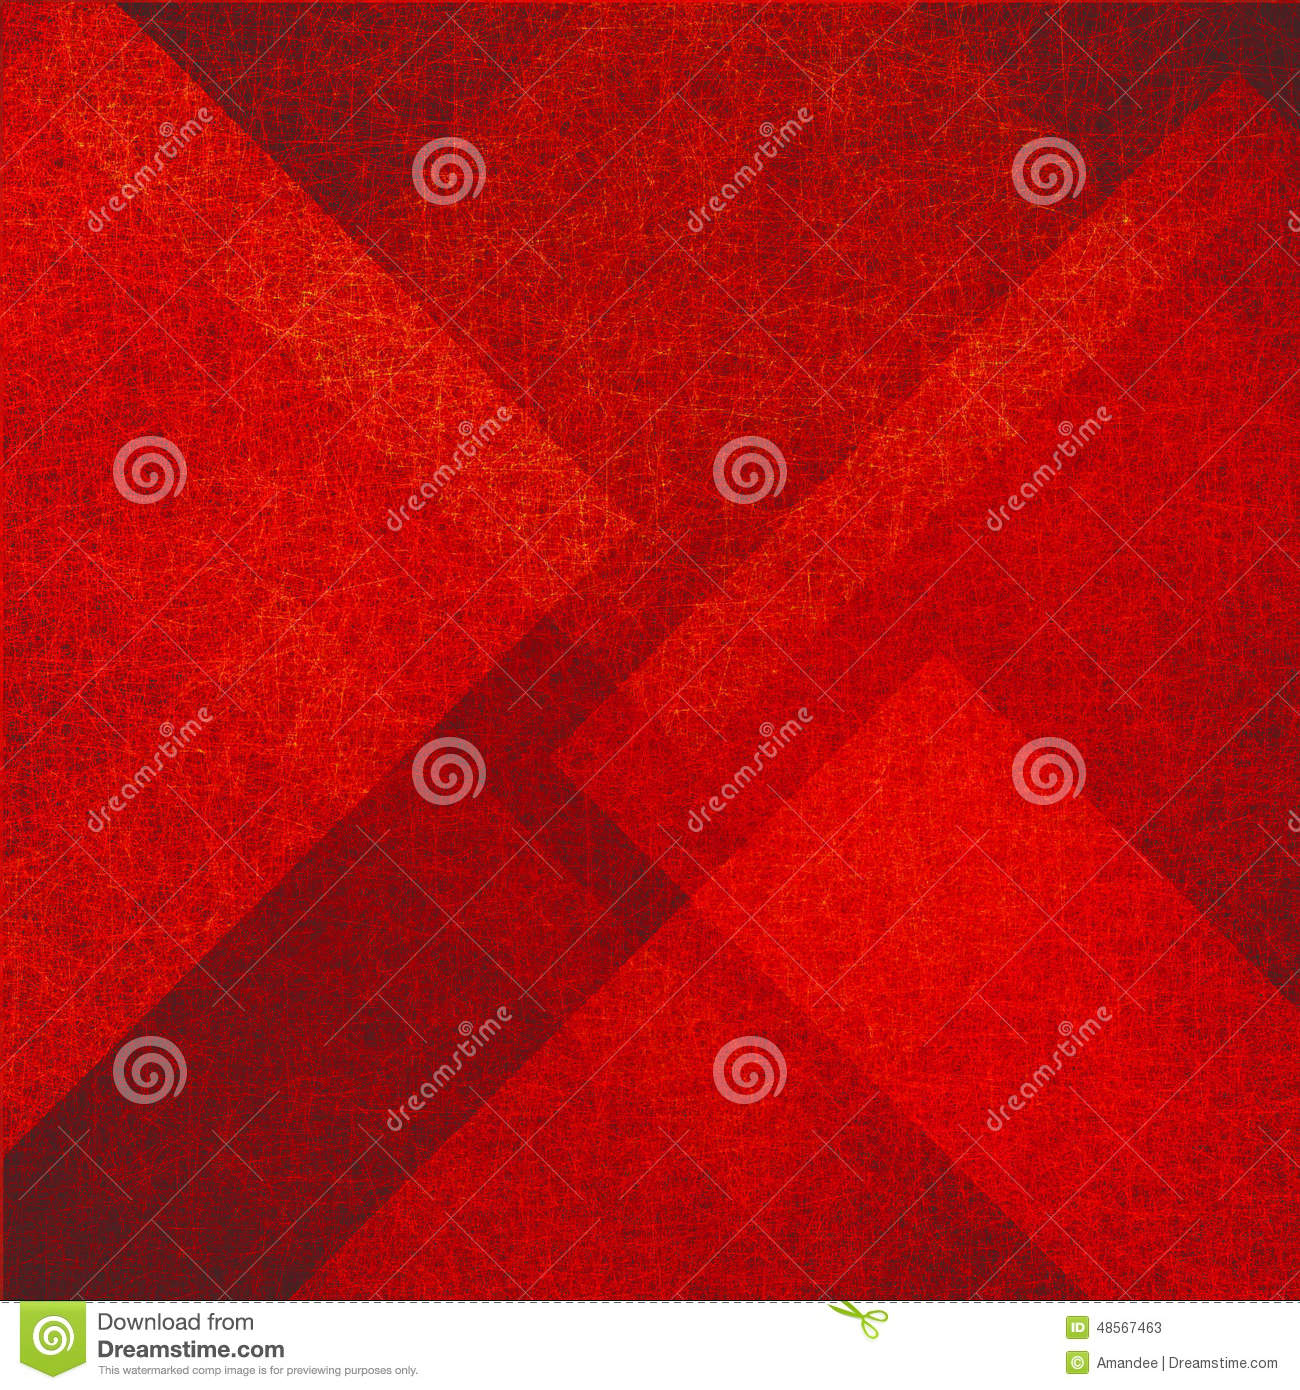 Abstract red background with triangle and diamond shapes in random pattern with vintage texture